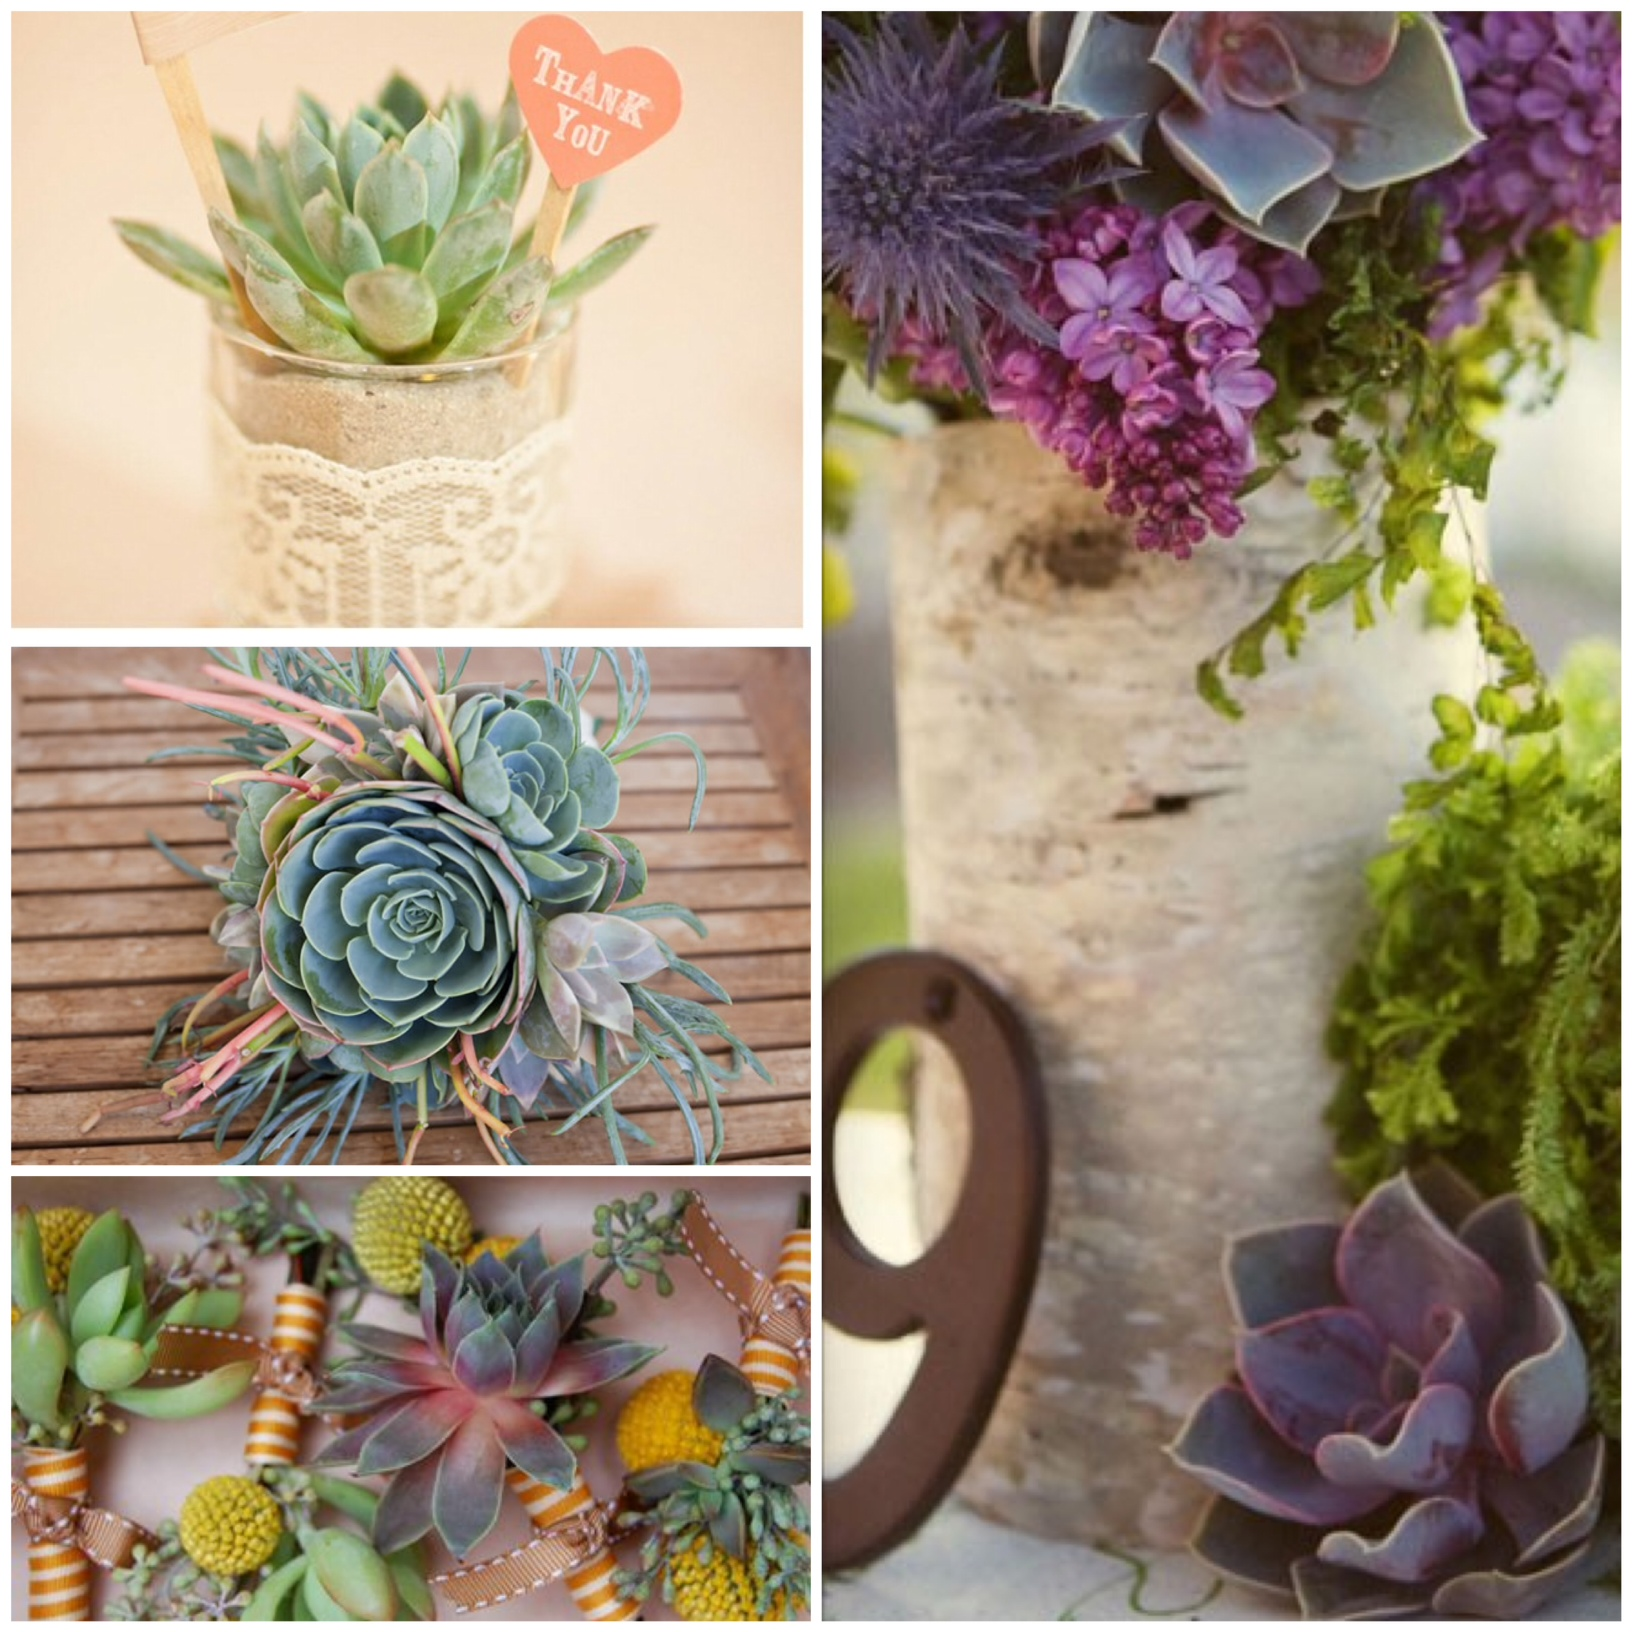 How to Use Succulents in a Wedding | glitterinc.com